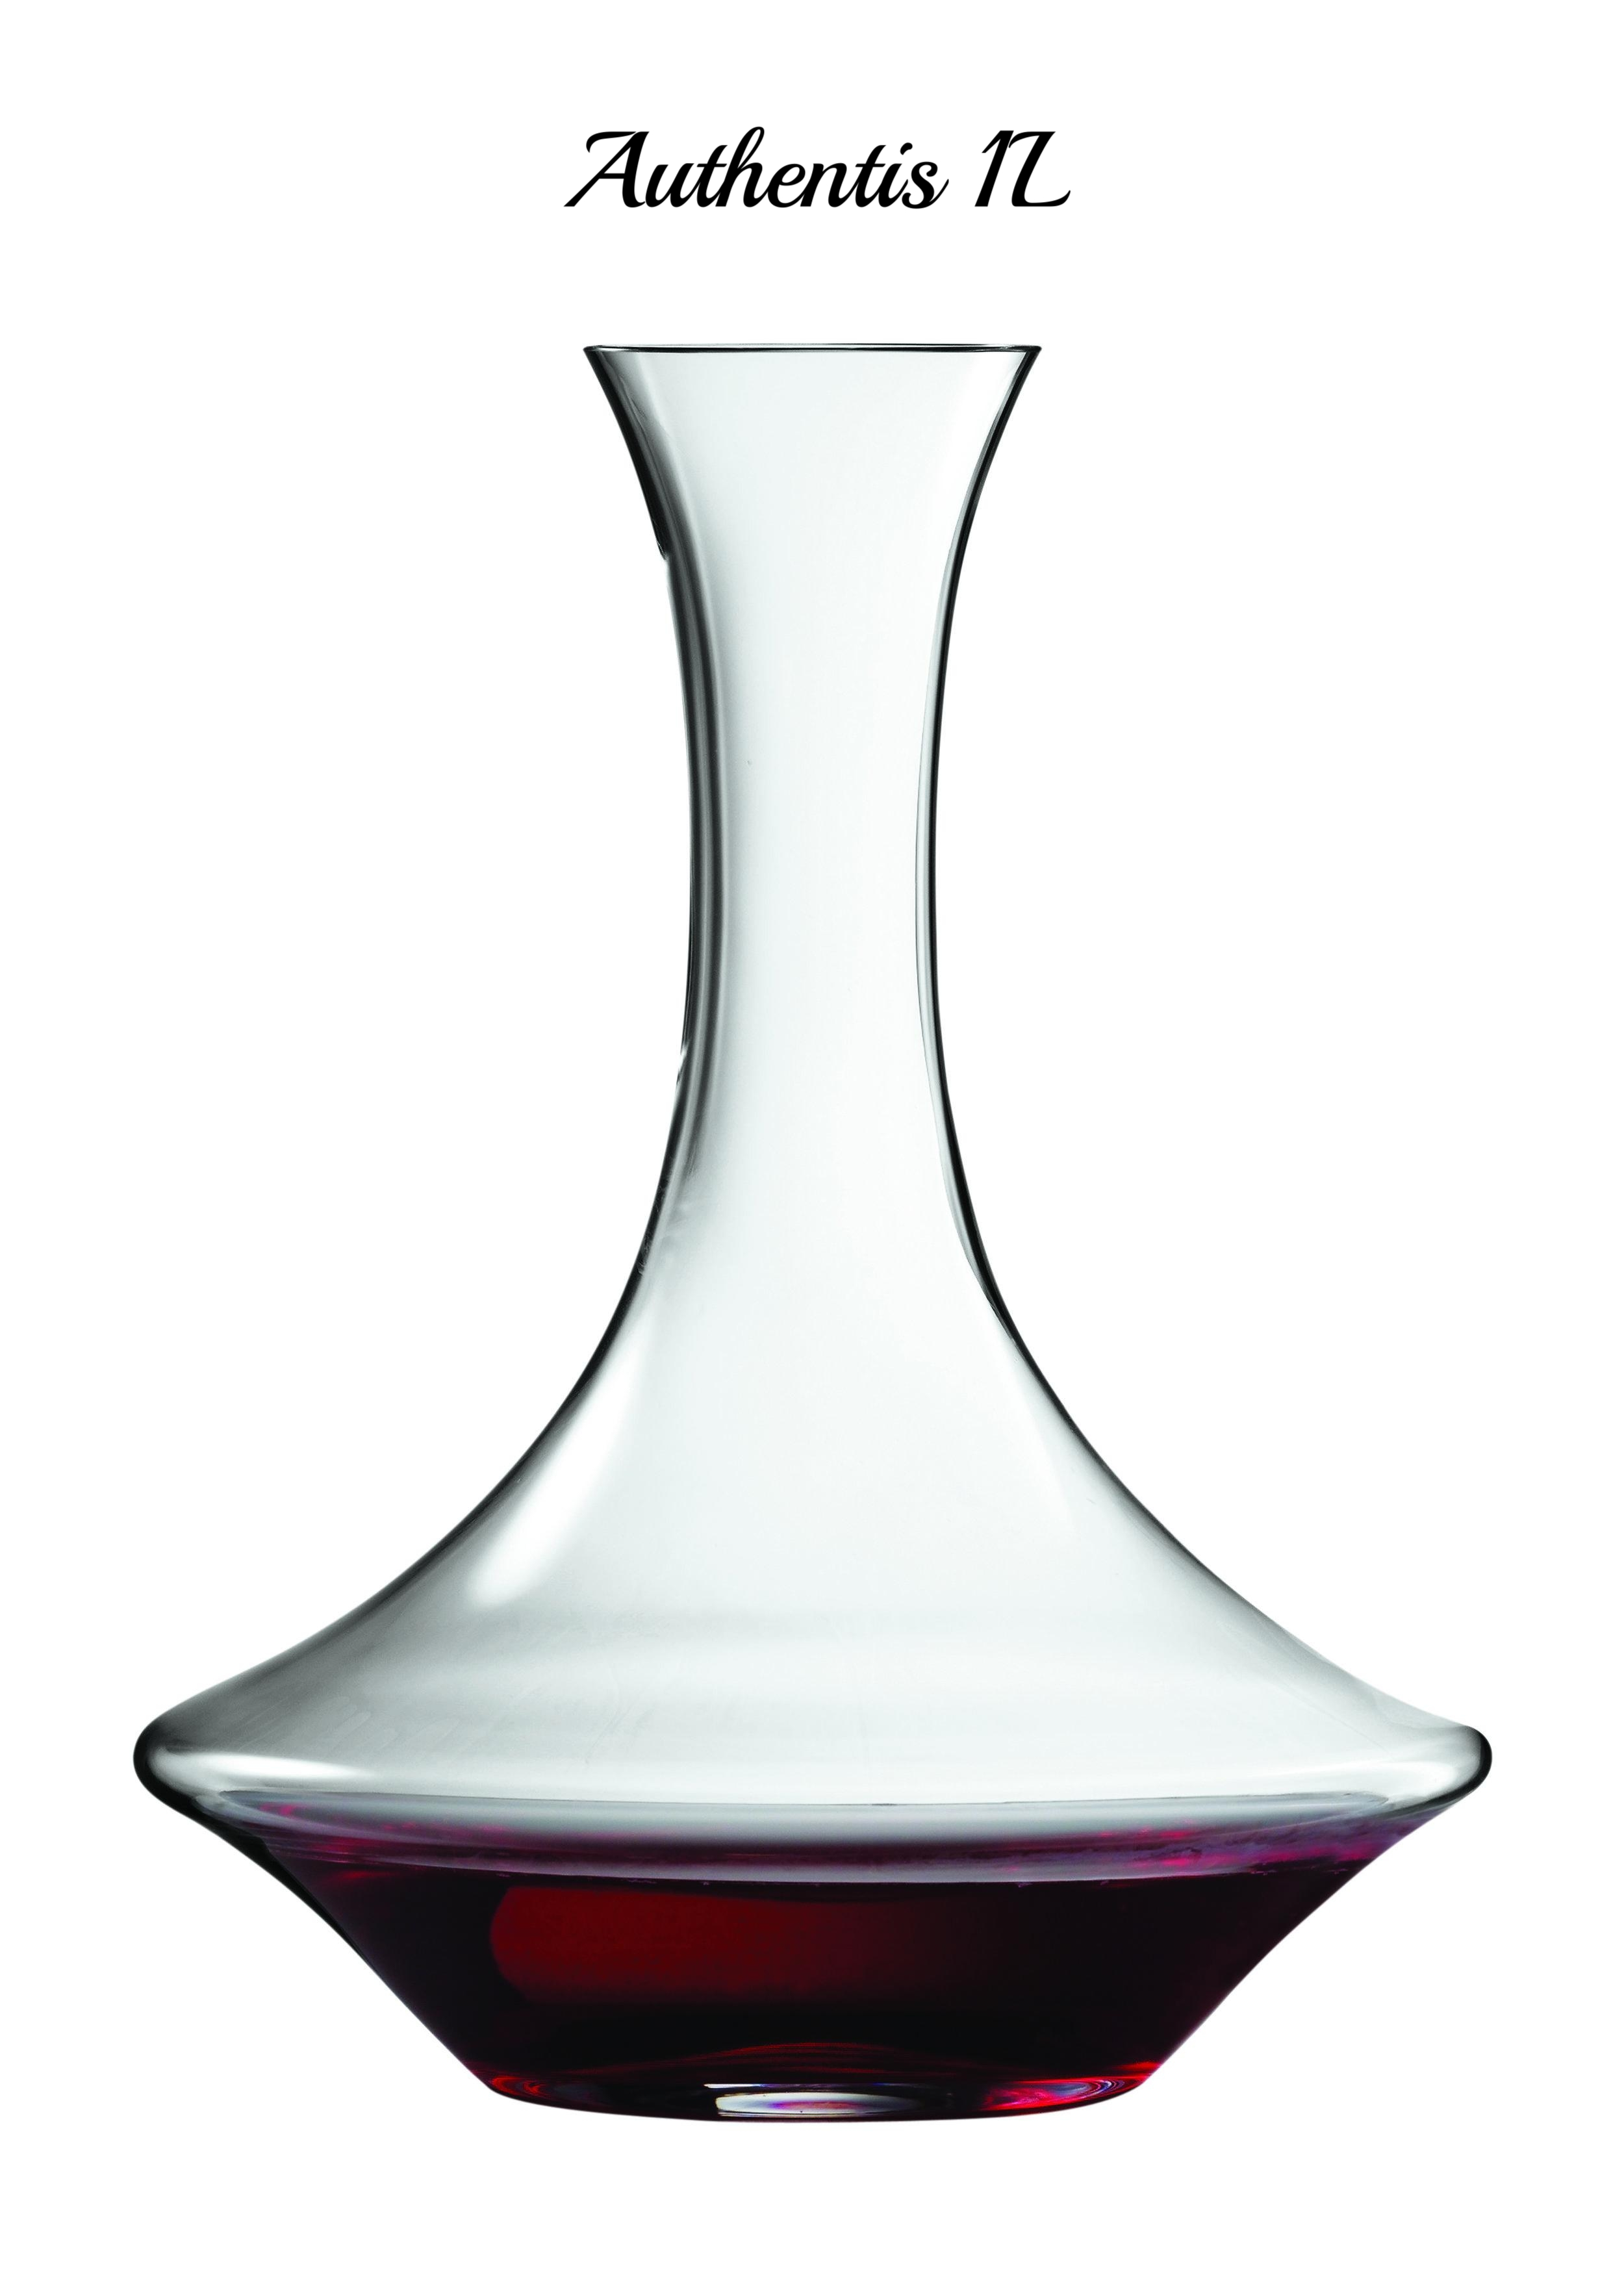 Authentis Decanter 7240059.jpg